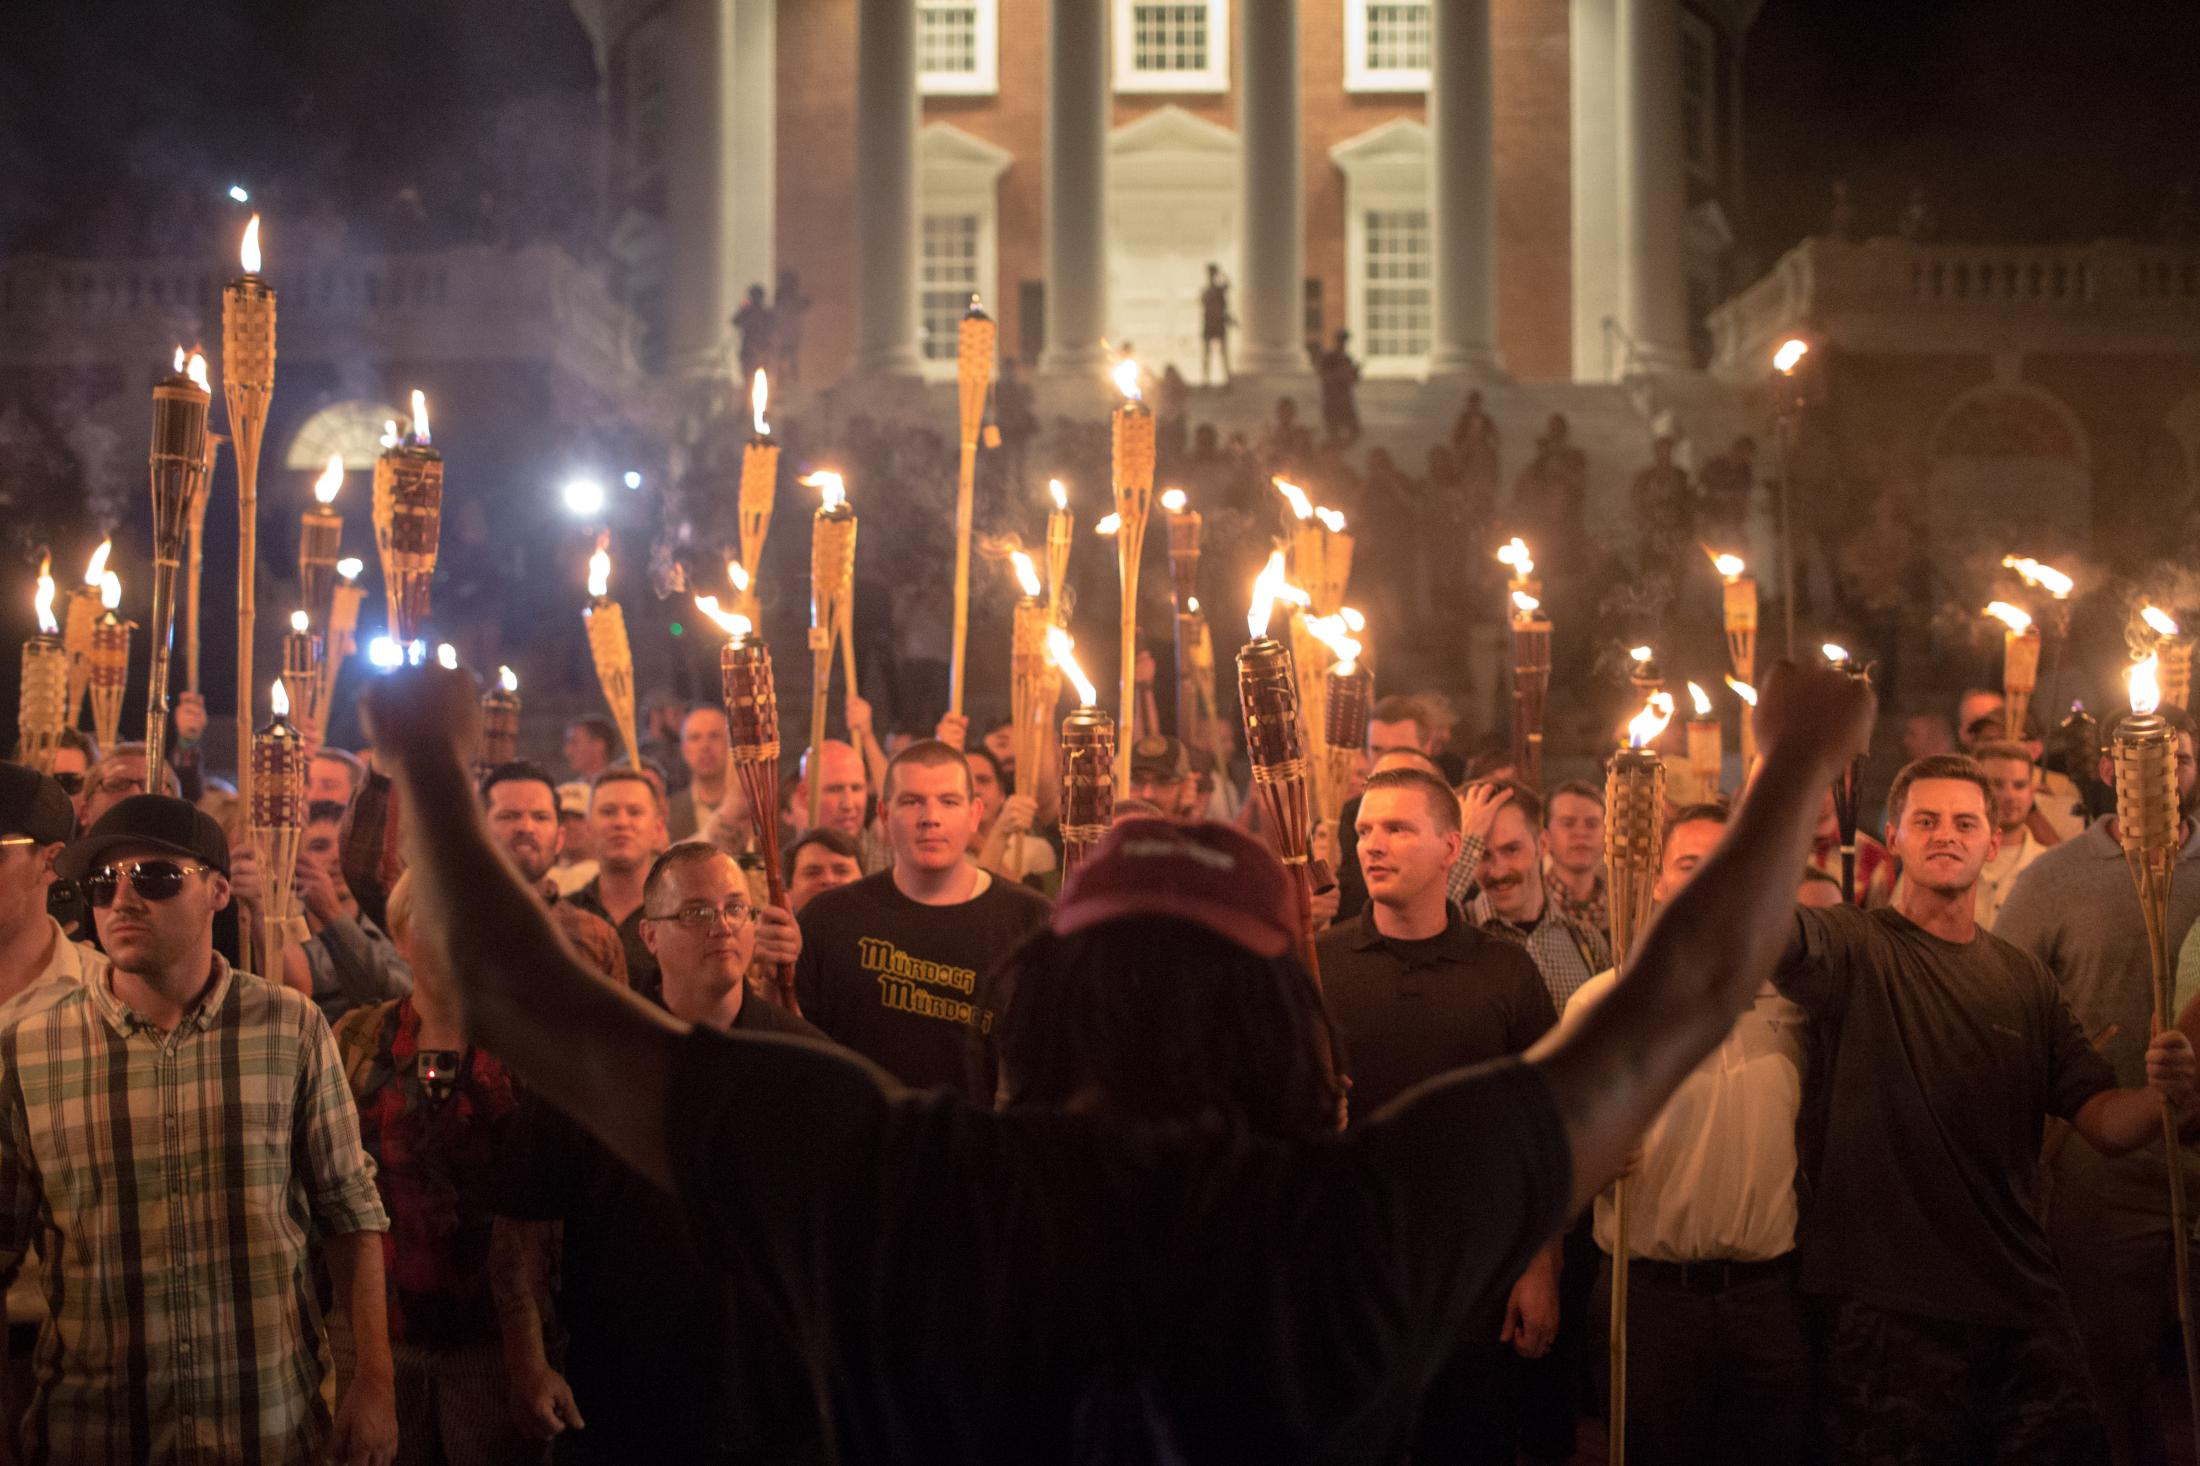 A counter-protester holds up his hands in front of hundreds of white nationalist protesters with torches at the Thomas Jefferson Memorial statue on the campus of the University of Virginia in Charlottesville, VA on August 11, 2017.